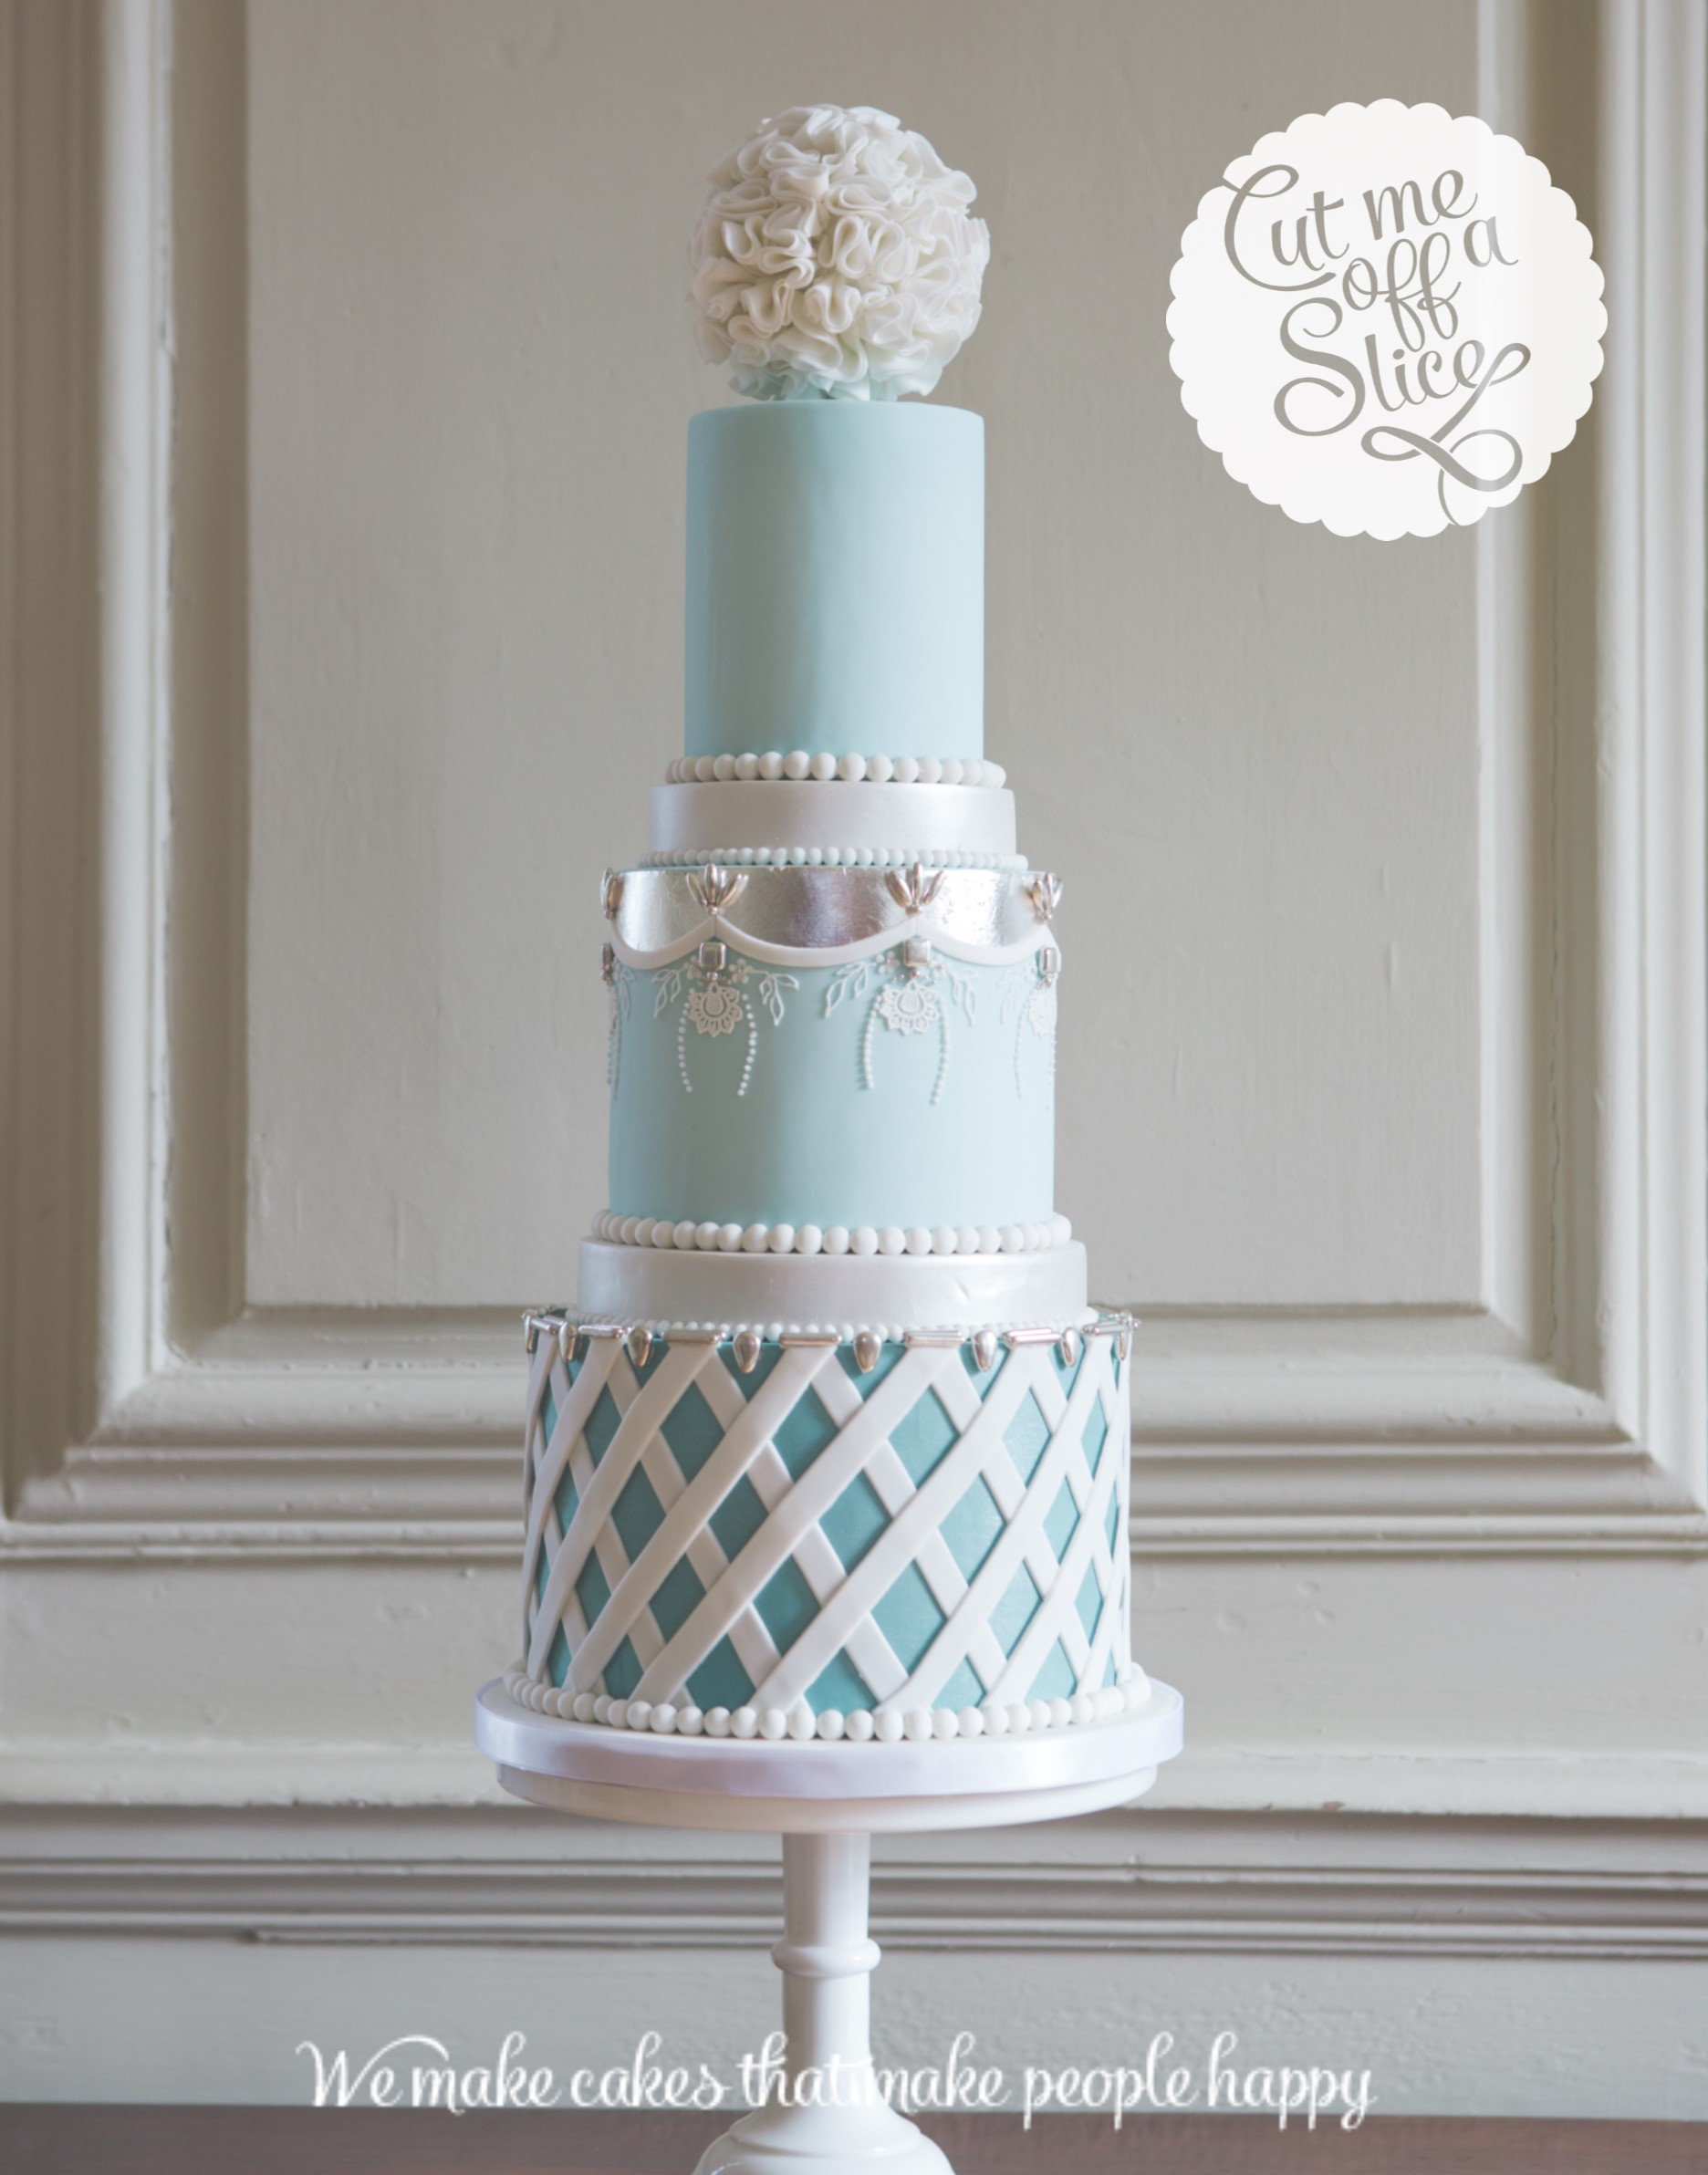 wedding cake blue and silver bespoke wedding cake by cut me a slice 22025